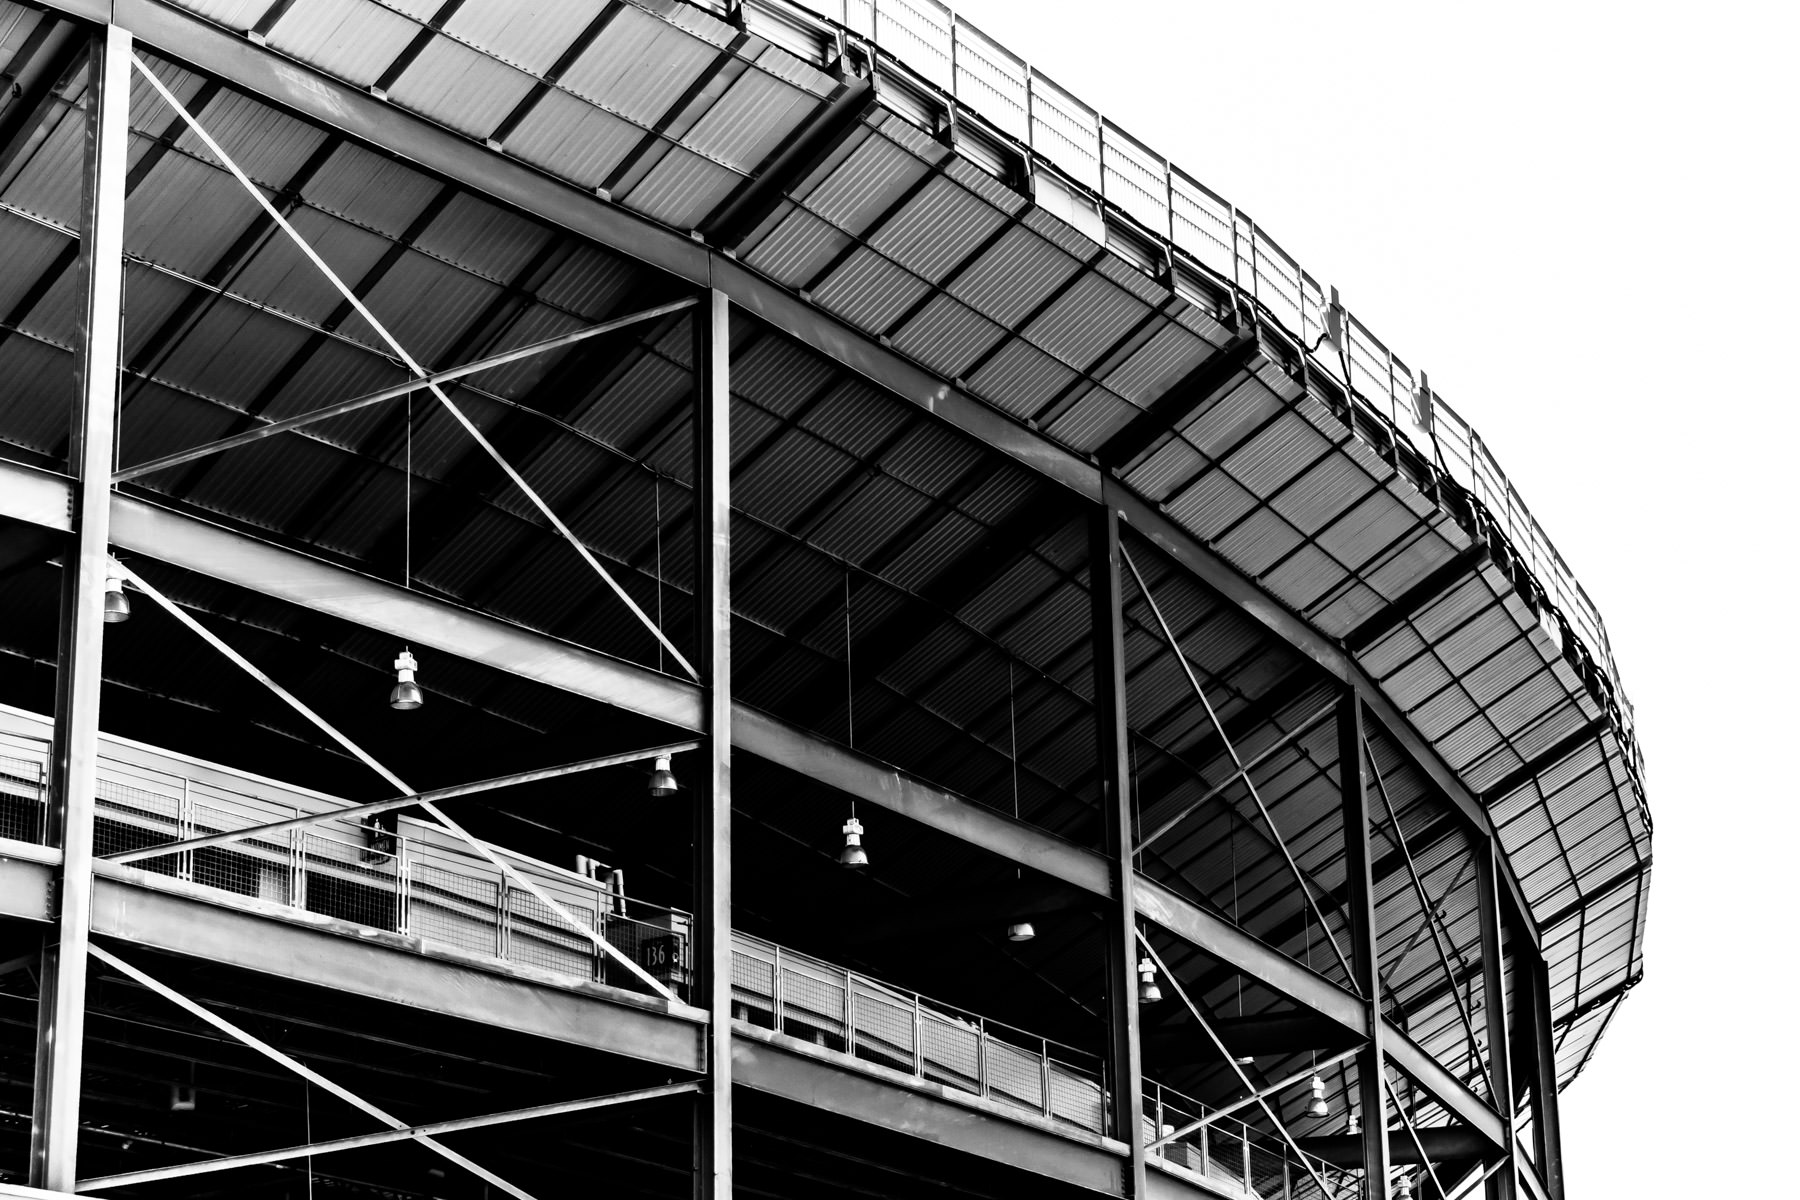 Detail of the exterior of the Cotton Bowl Stadium, Fair Park, Dallas.